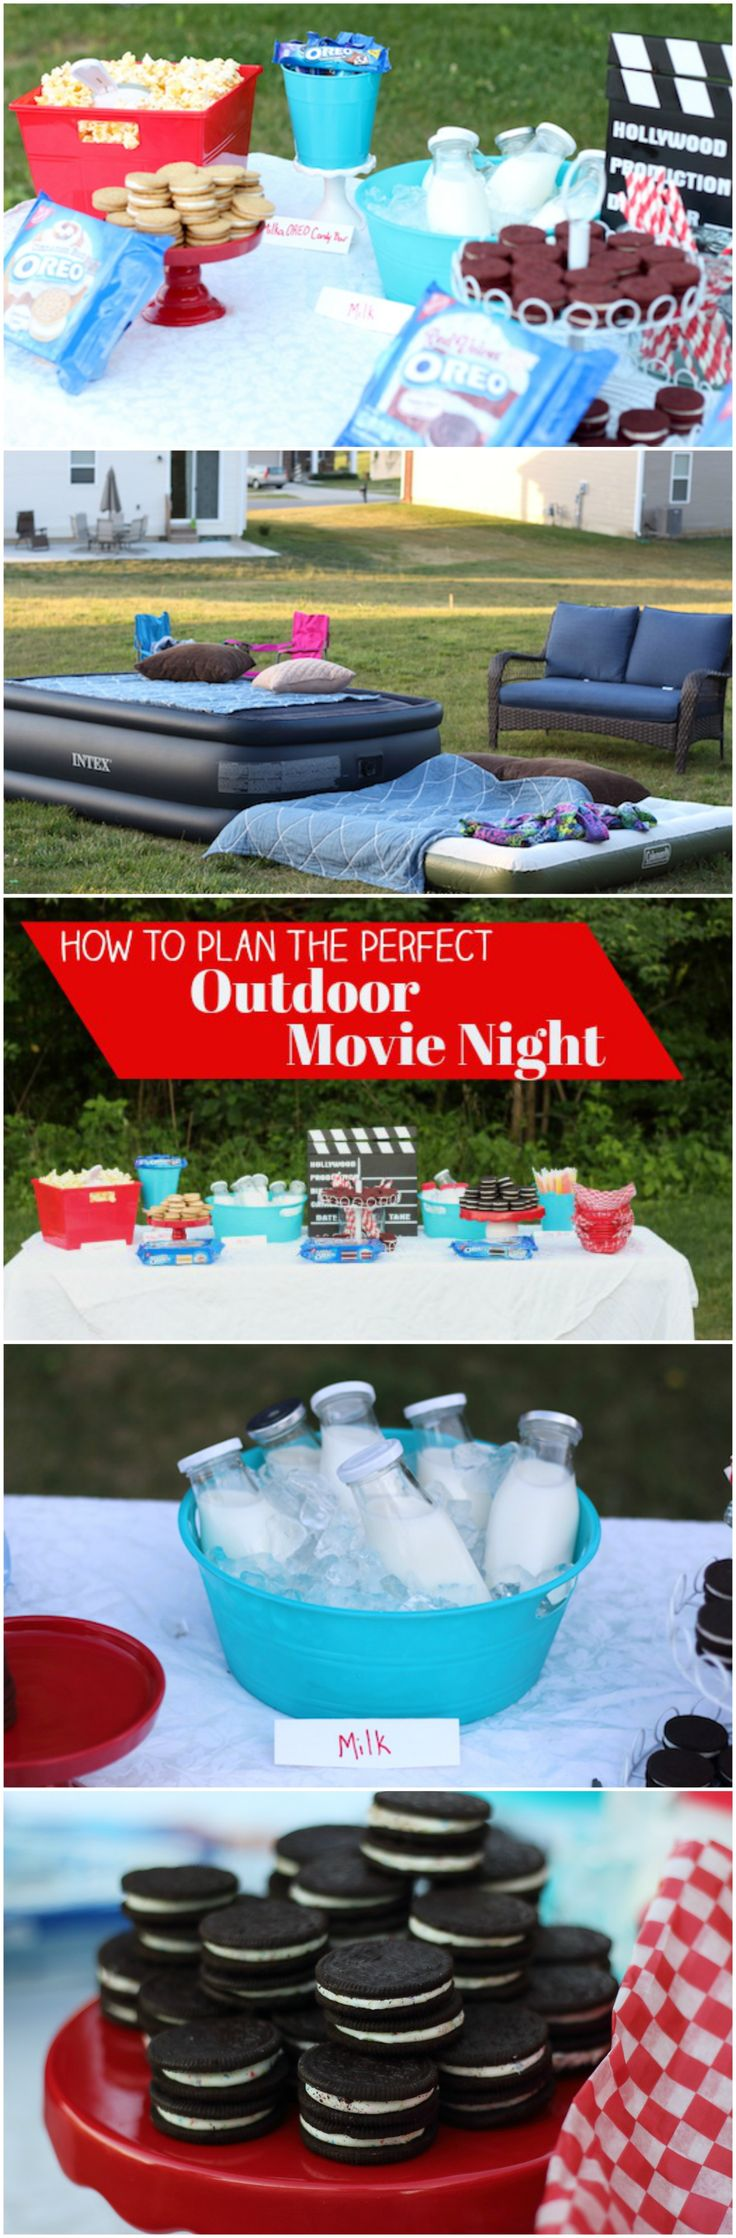 We love to hang out outside and have outdoor movie nights. Here are some of my tips to host the perfect outdoor movie night with @oreo  Cookies and MILKA OREO Chocolate Candy Bars. You can find them at your favorite @krogerco grocery store!  #EnterTheWonderVault #ad